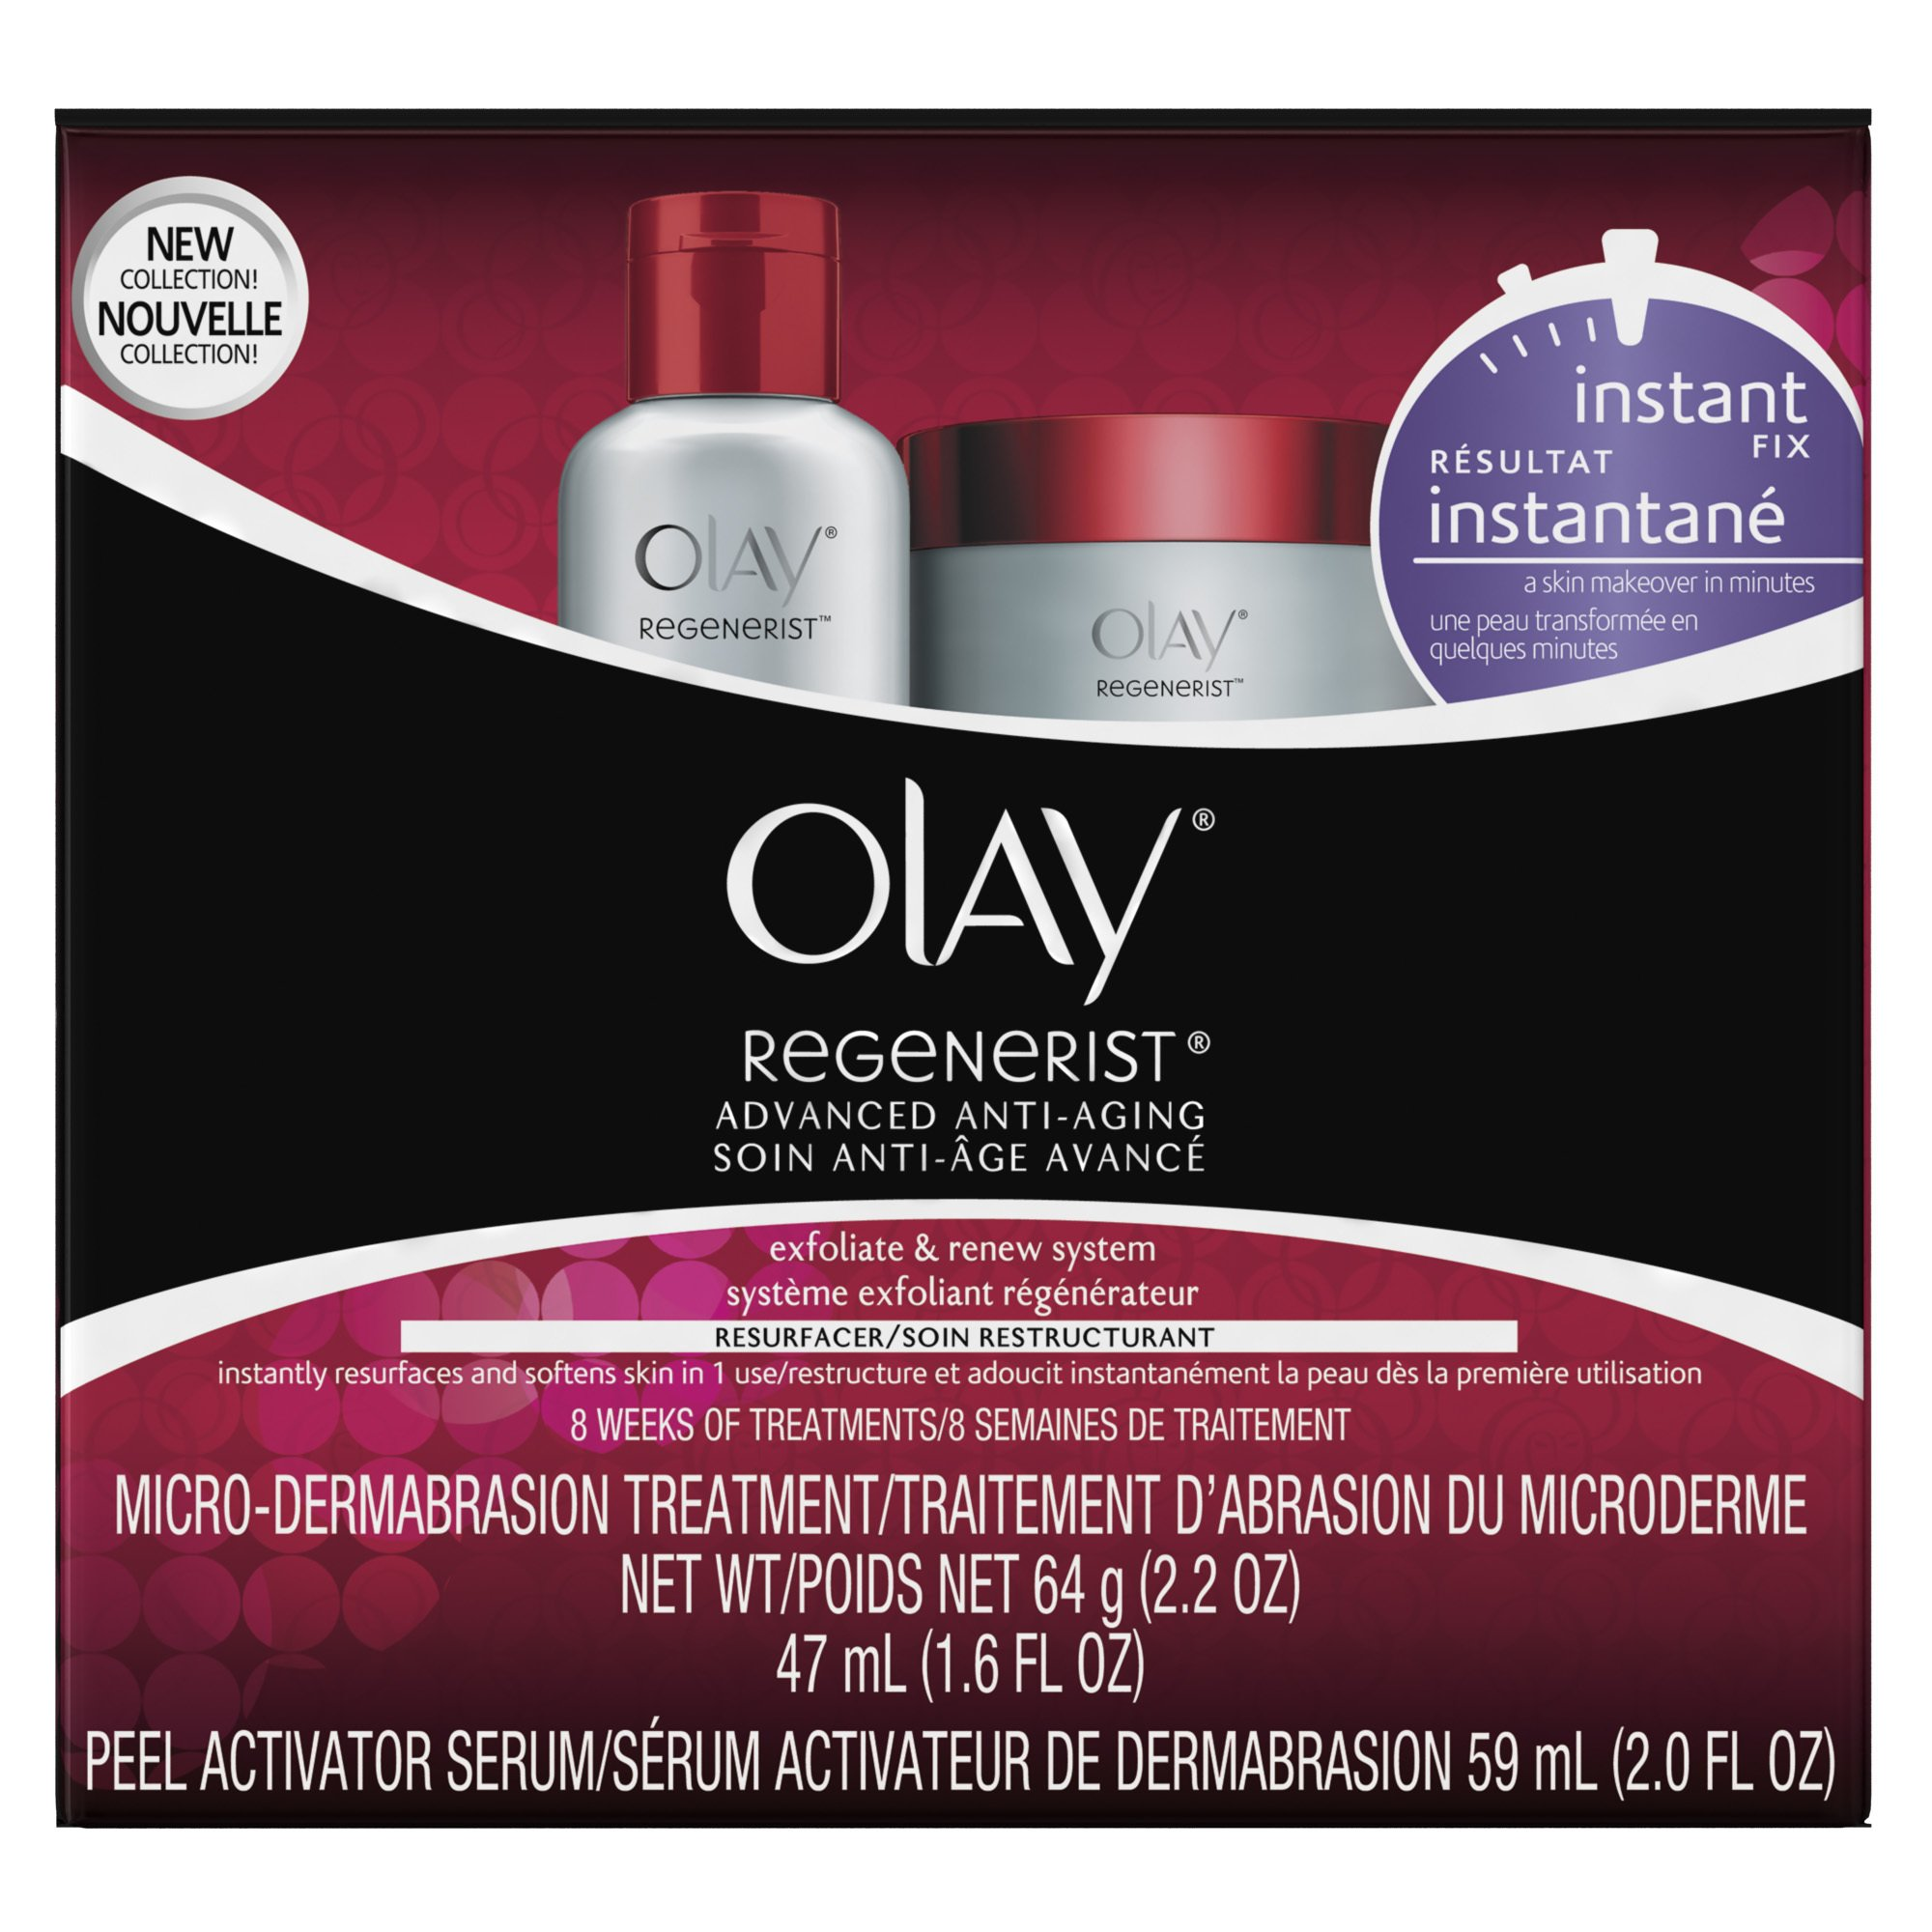 Microdermabrasion Kit by Olay Regenerist, Face Peel & Scrub for Dry Skin, Reduce Wrinkles & Fine Lines, 1 Kit by Olay